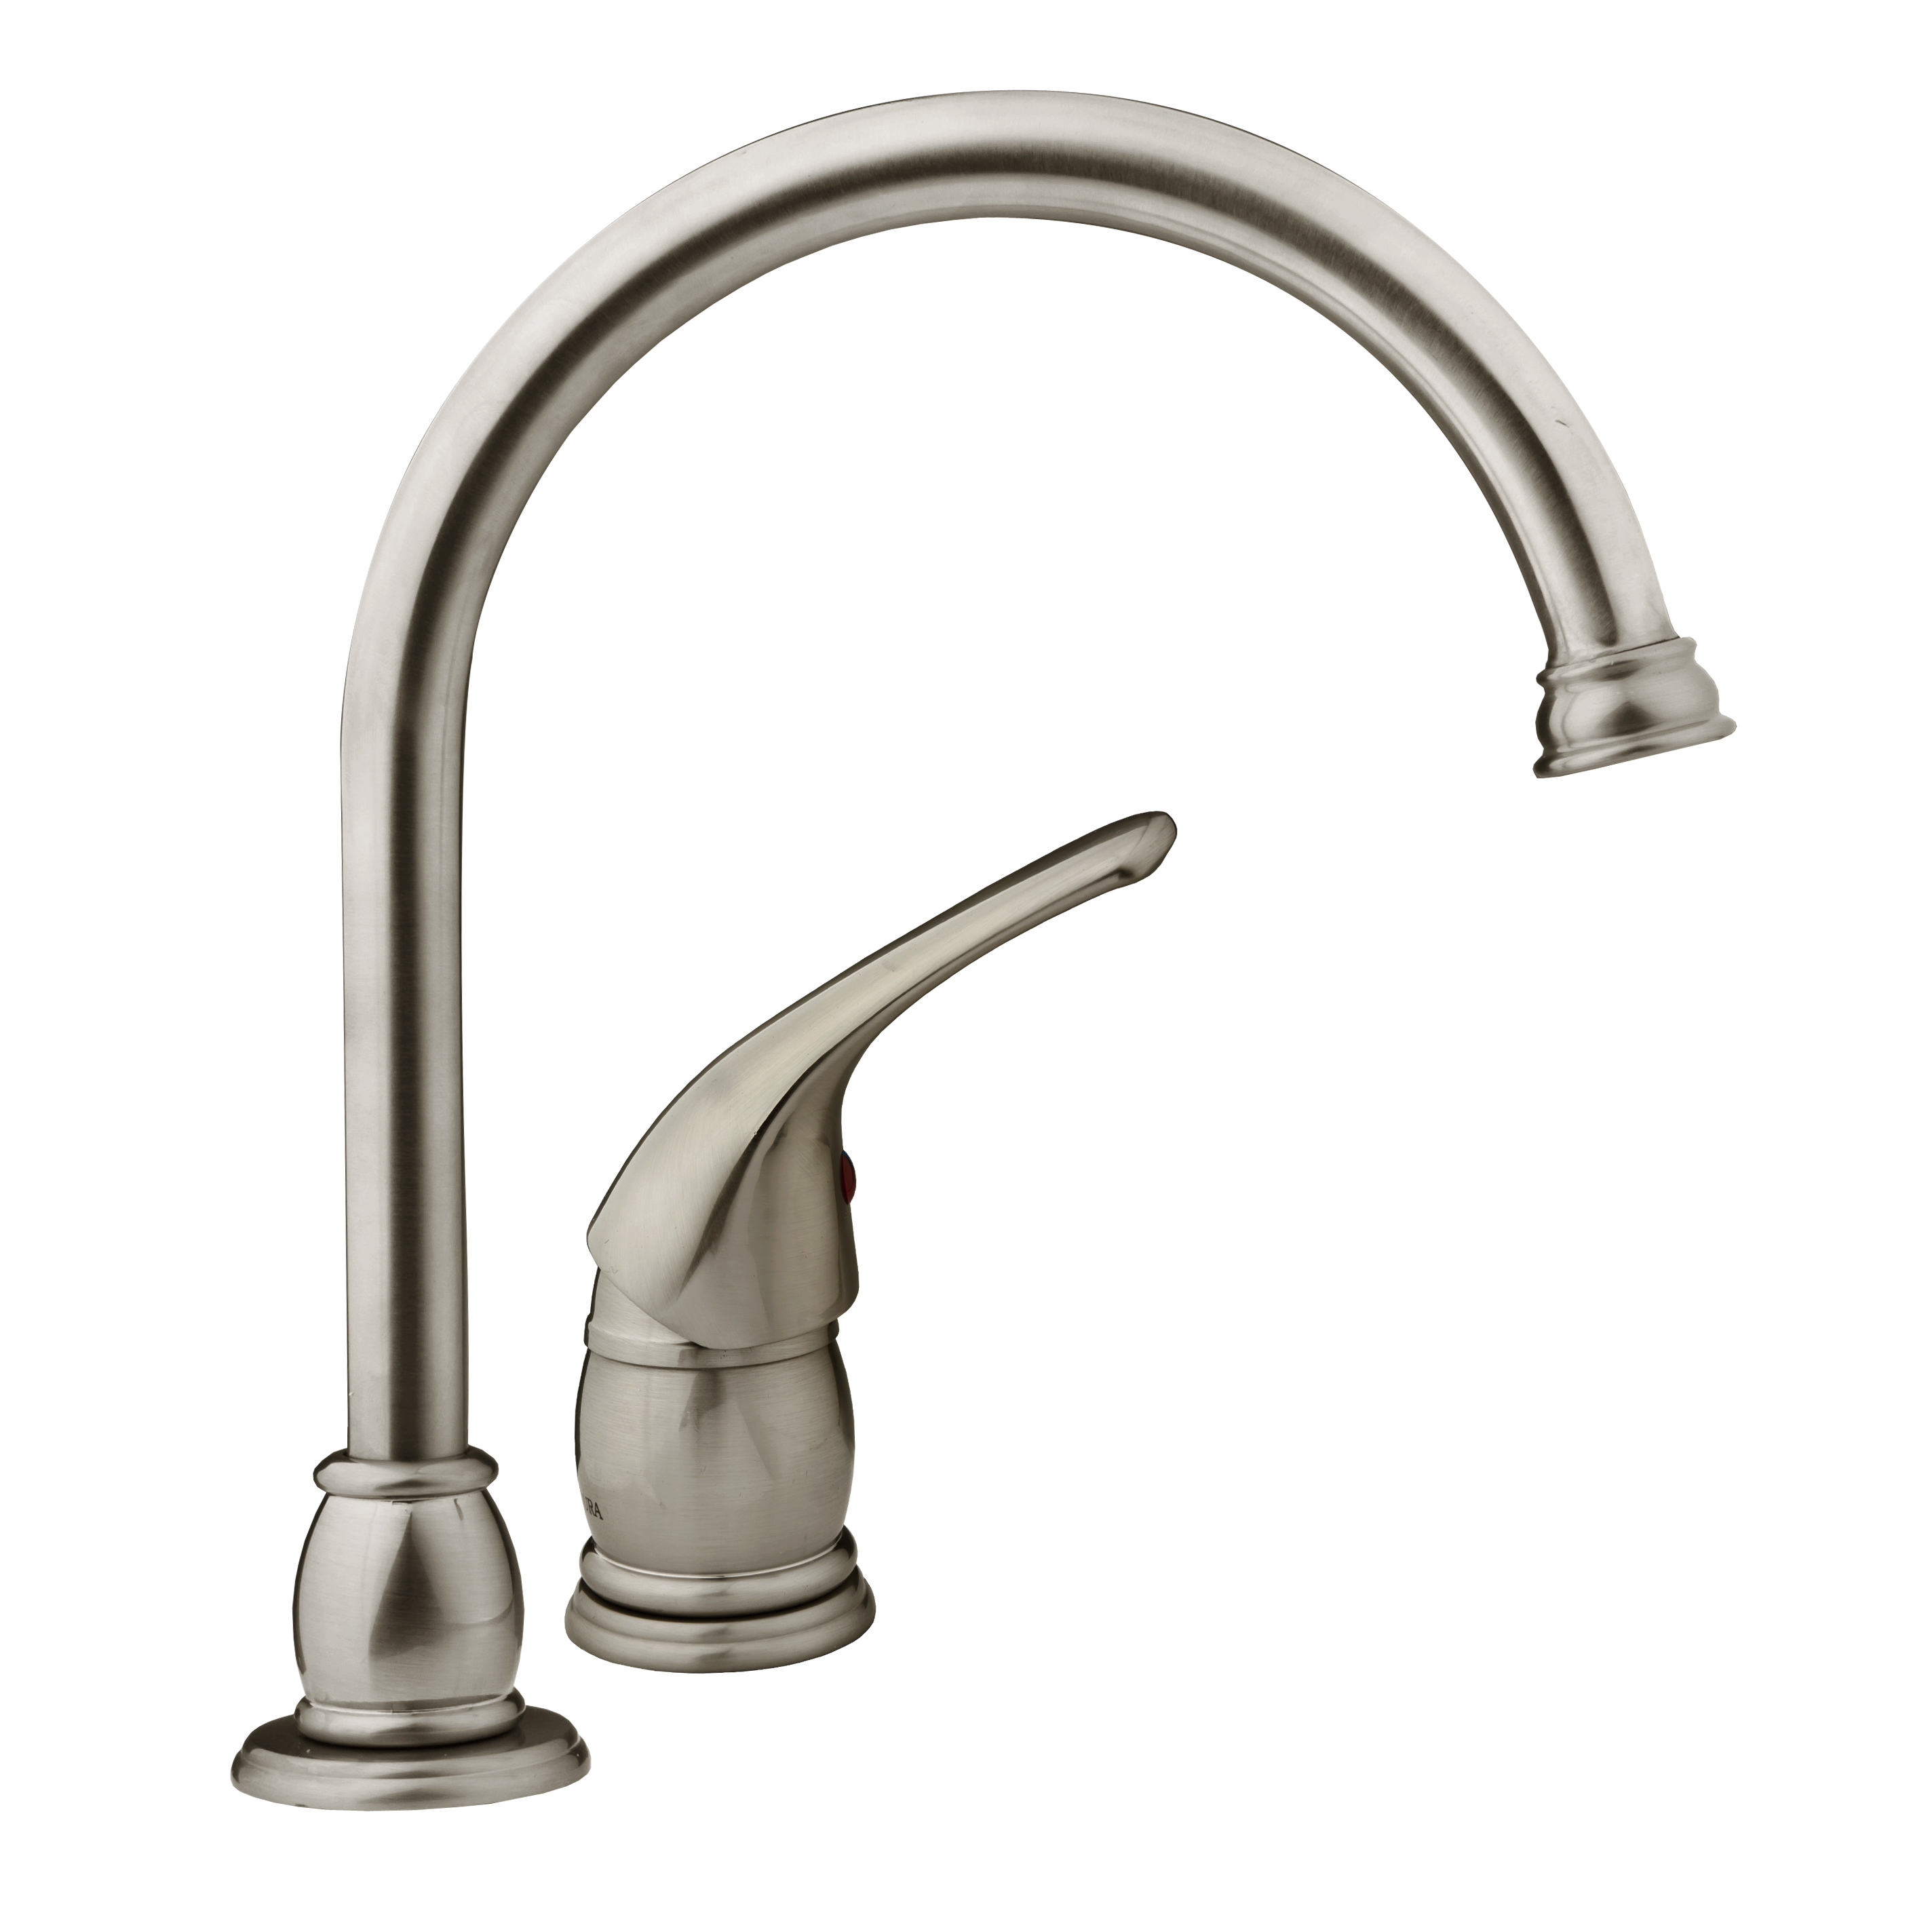 DF-NMK301-SN Dura Faucet Faucet Used For Kitchen